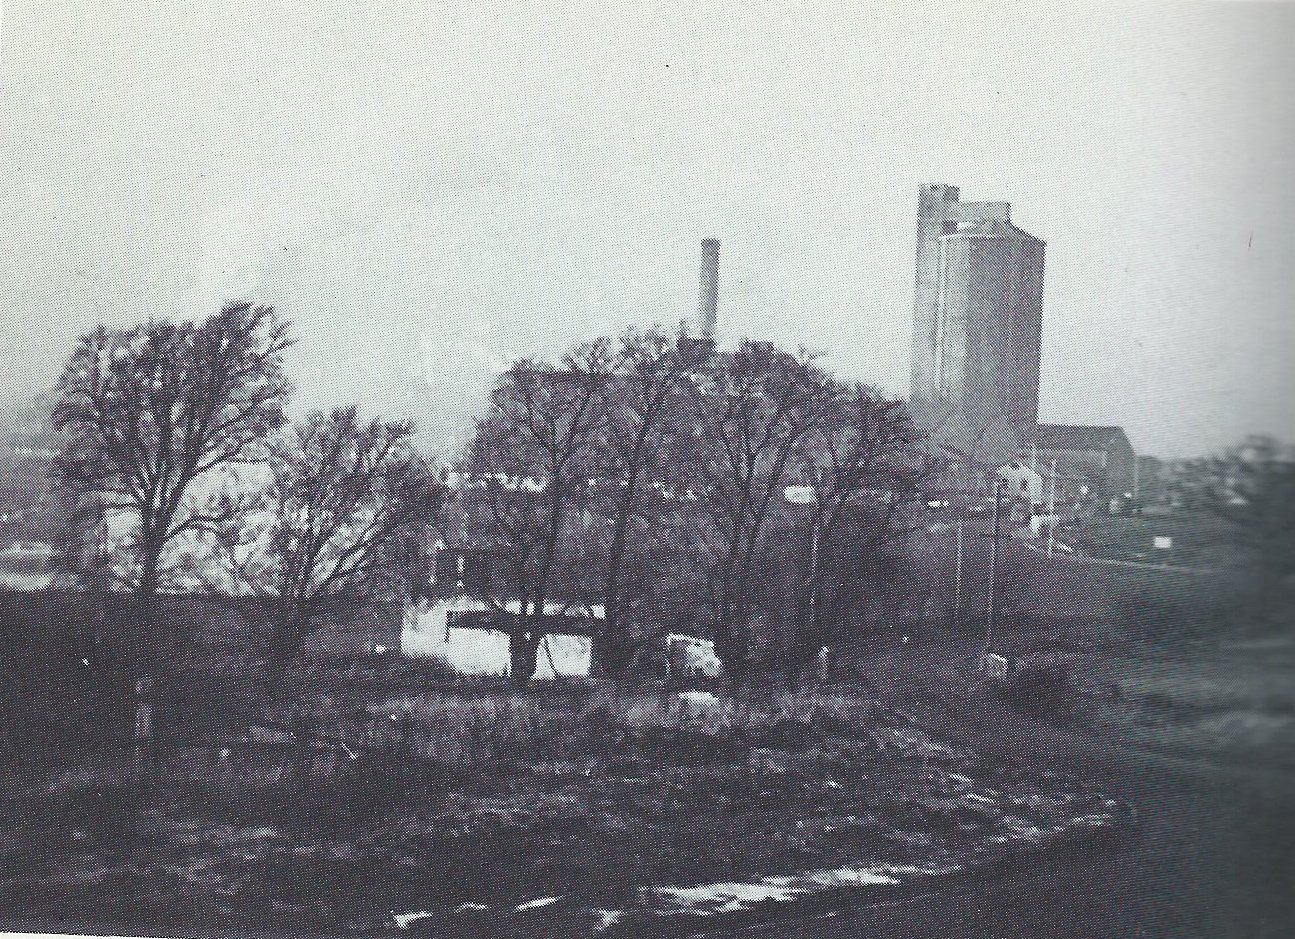 Sugar Beet Factory, Little Dunmow, 1976